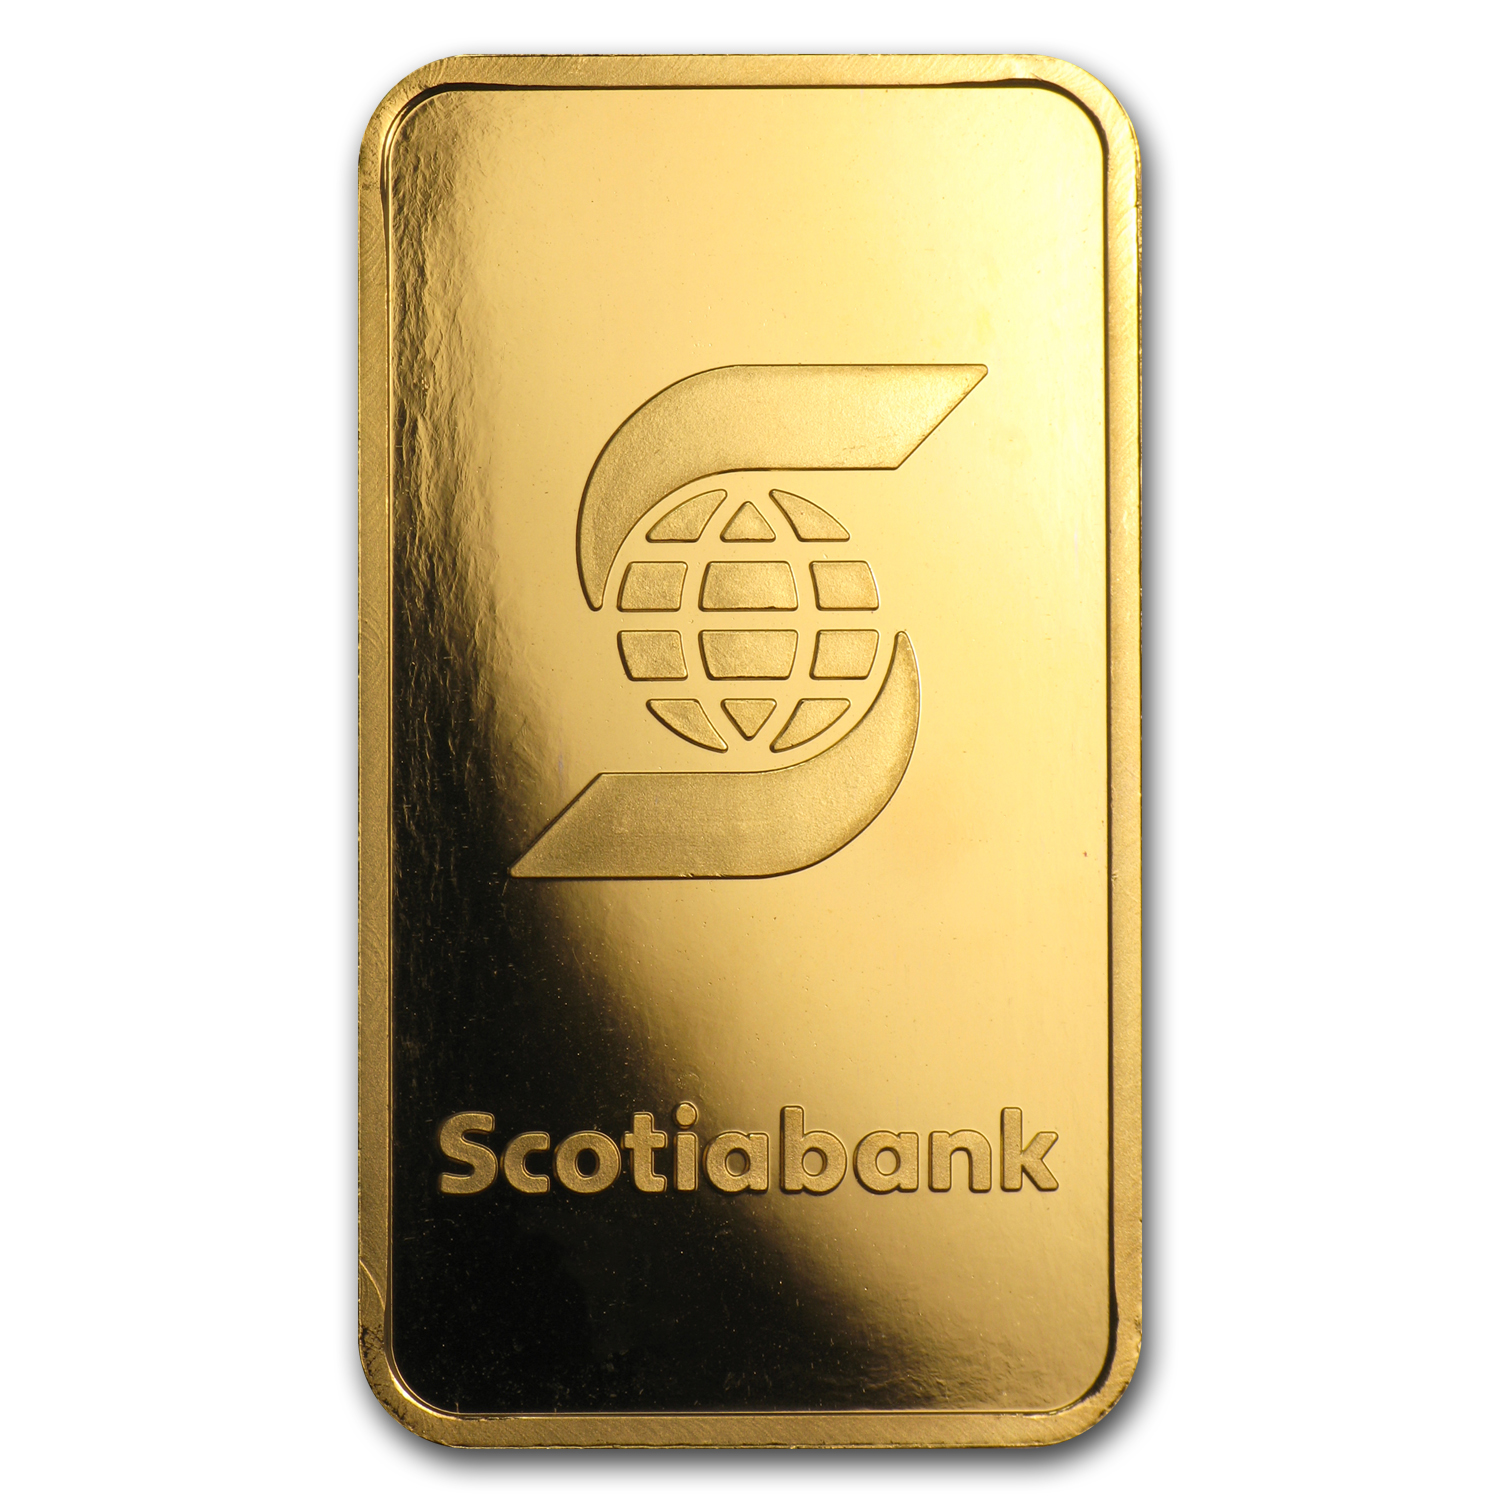 1 oz Gold Bar - Scotiabank